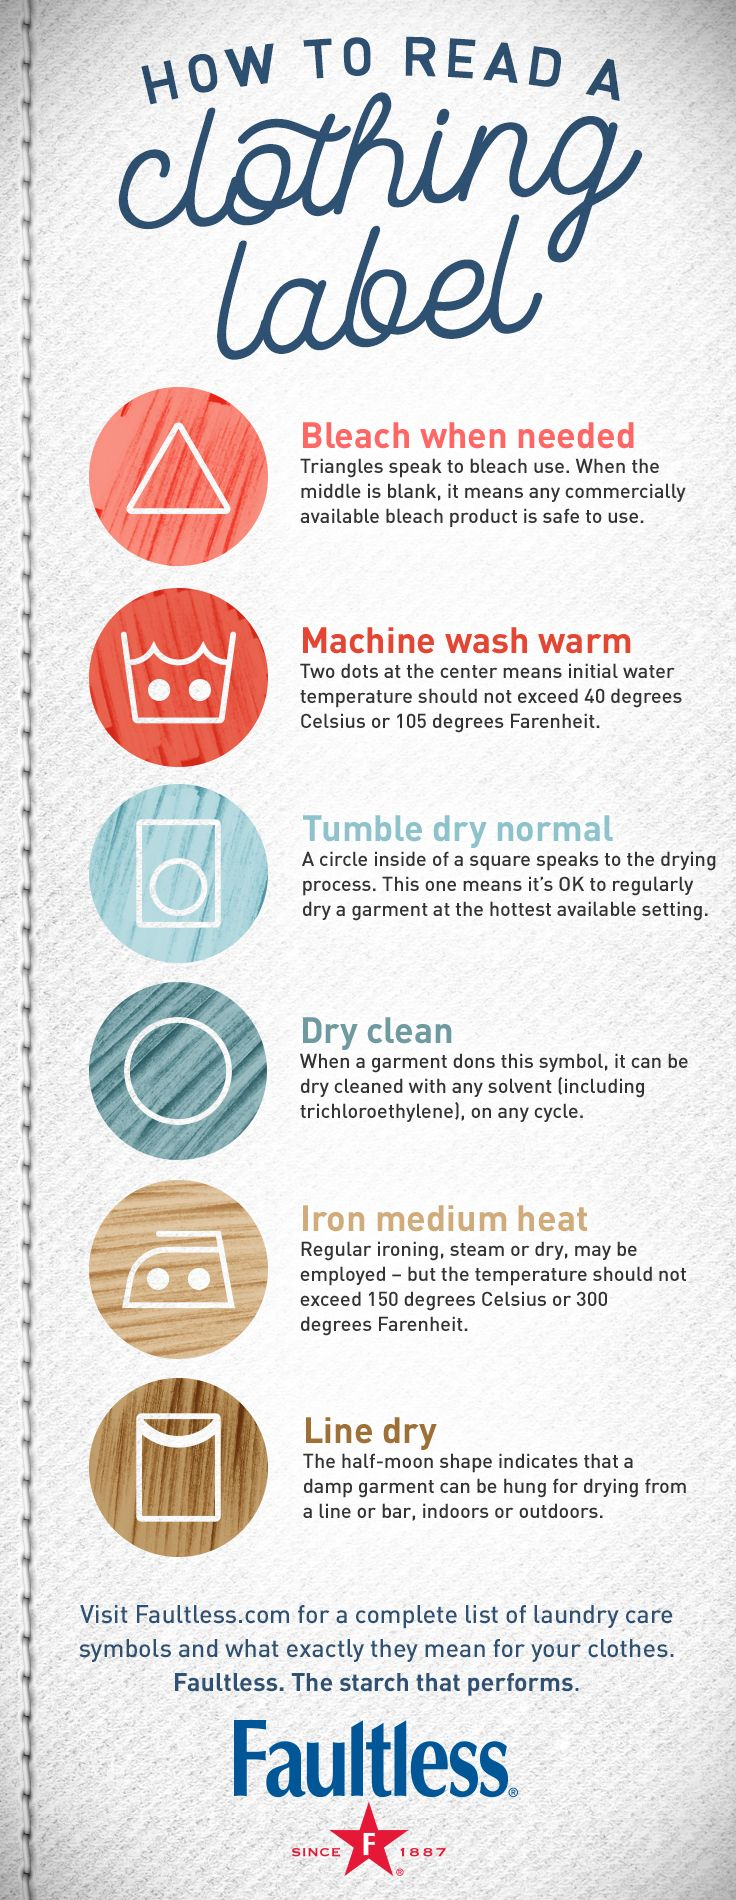 Learn How To Read a Clothing Label with this easy laundry guide!    Wash warm. Use low heat. Bleach as needed. If you're not checking your clothing labels you could end up damaging some of your favorite fall outfits while doing your normal laundry routine.